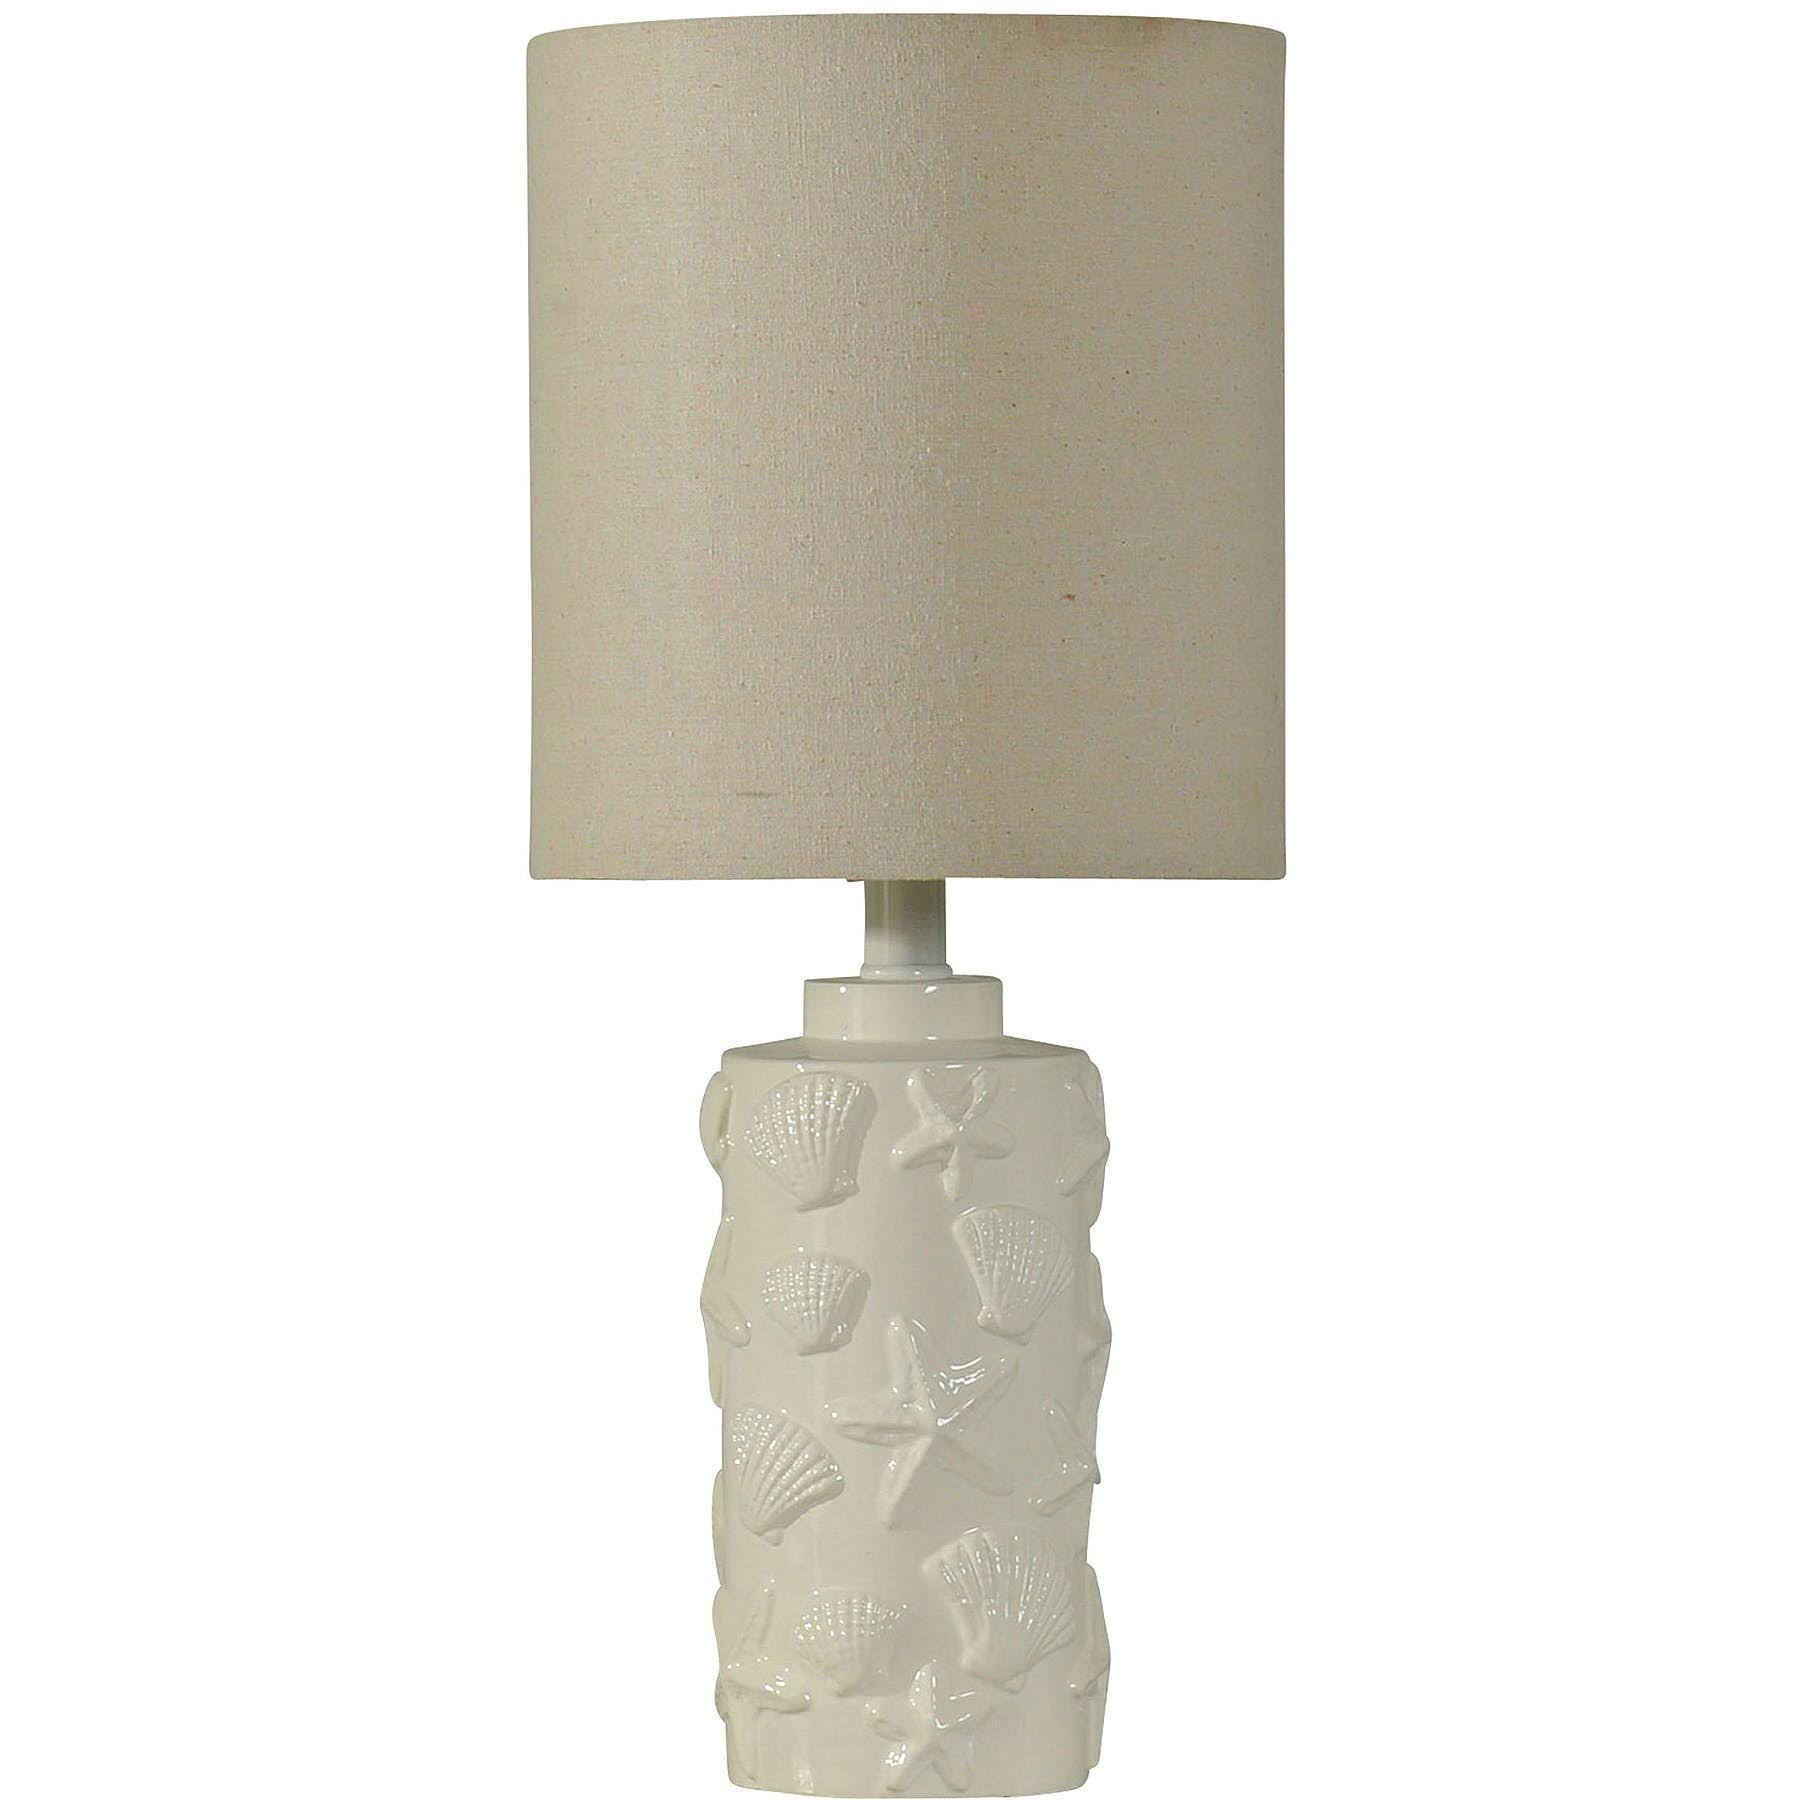 Gwg Outlet Accent Table Lamp in White Finish L13182DS